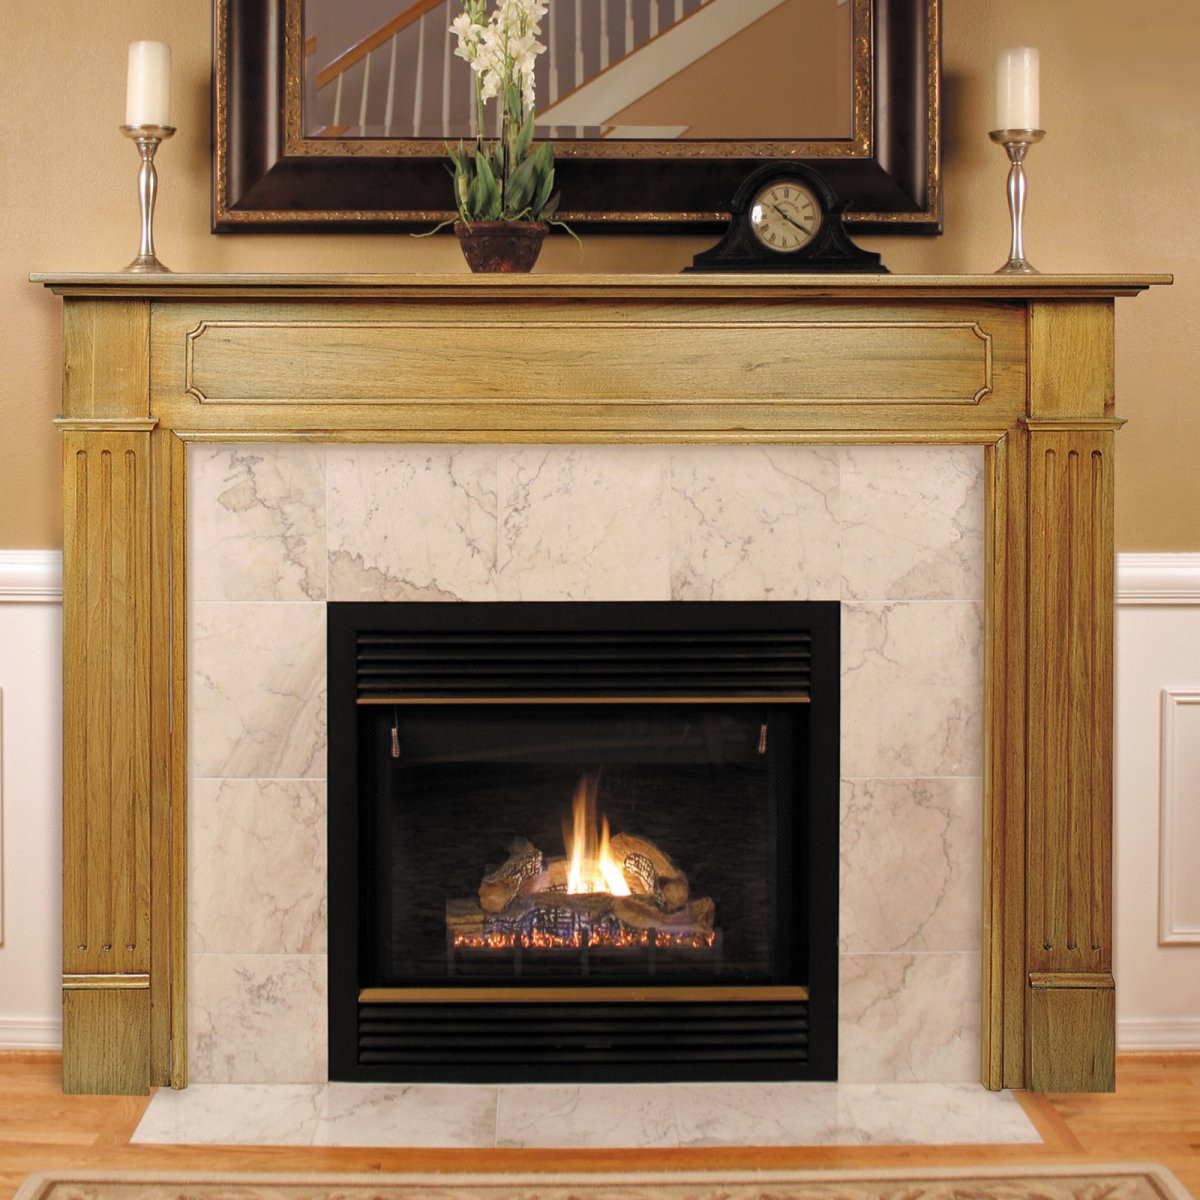 Best ideas about Wood Fireplace Mantels . Save or Pin Tips on How to Find the Best Fireplace Mantels and Now.